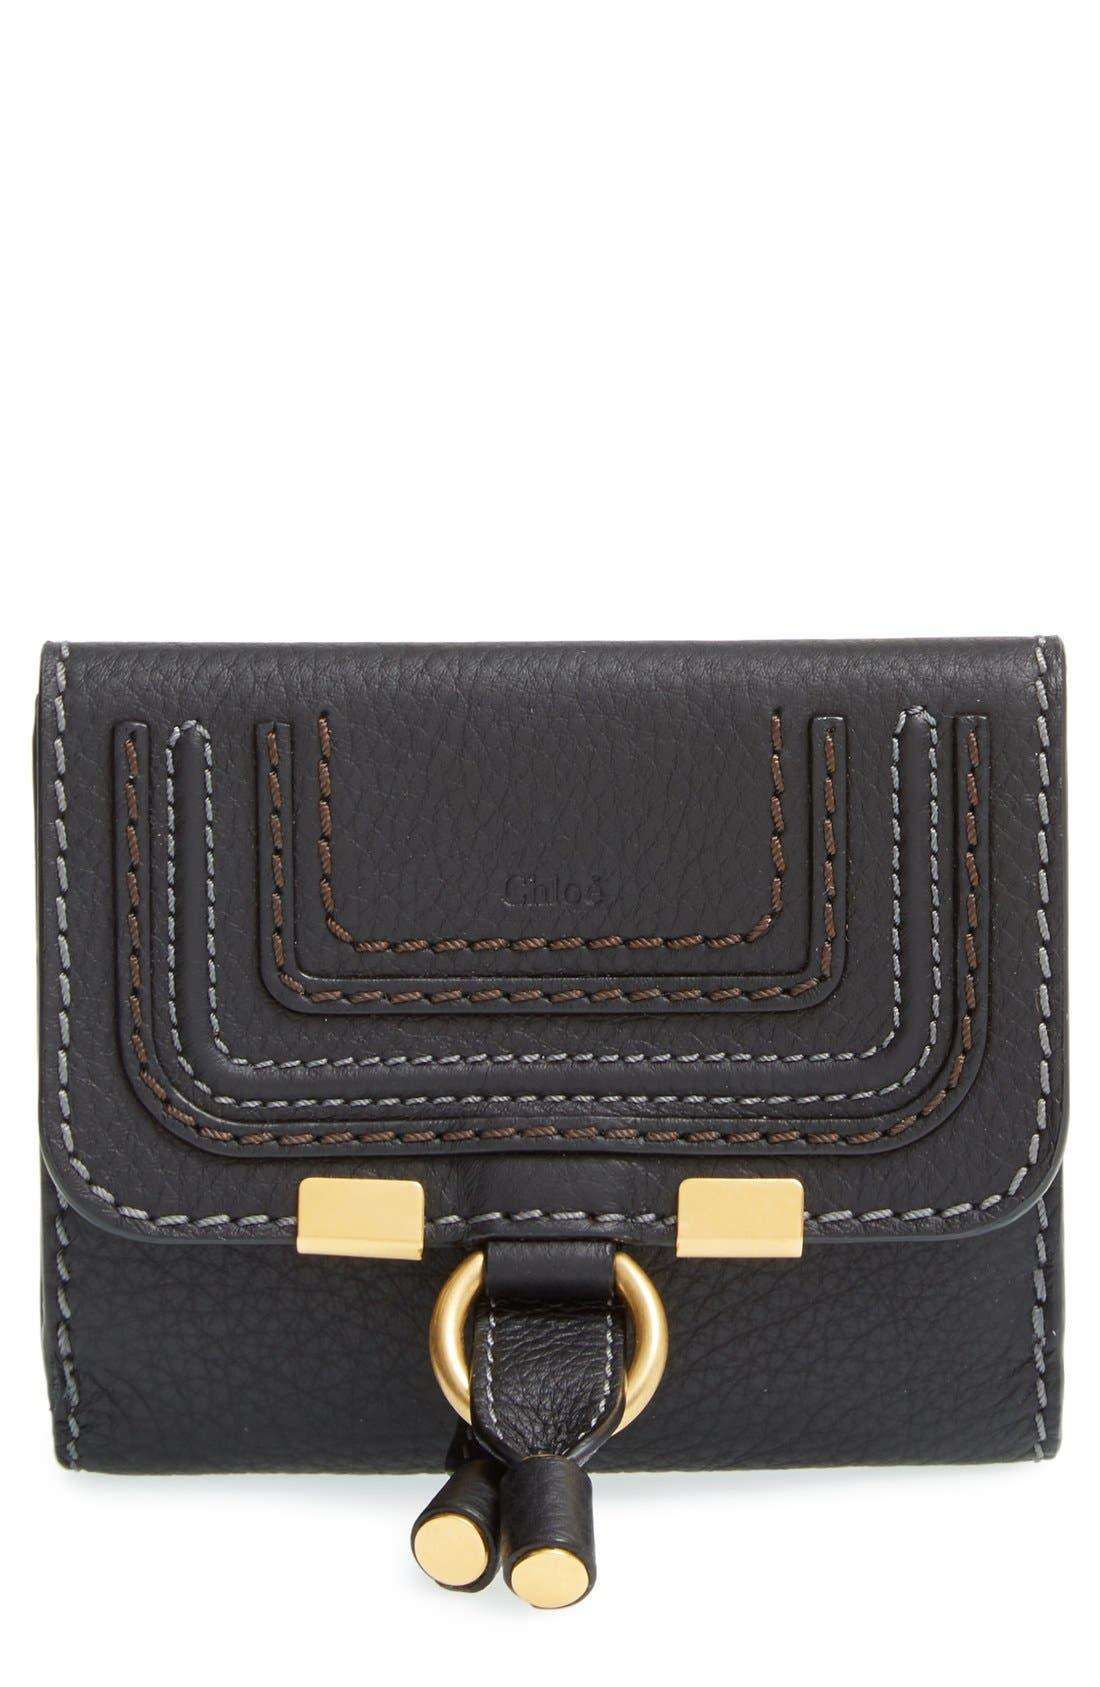 CHLOÉ 'Marcie' French Wallet, Main, color, BLACK